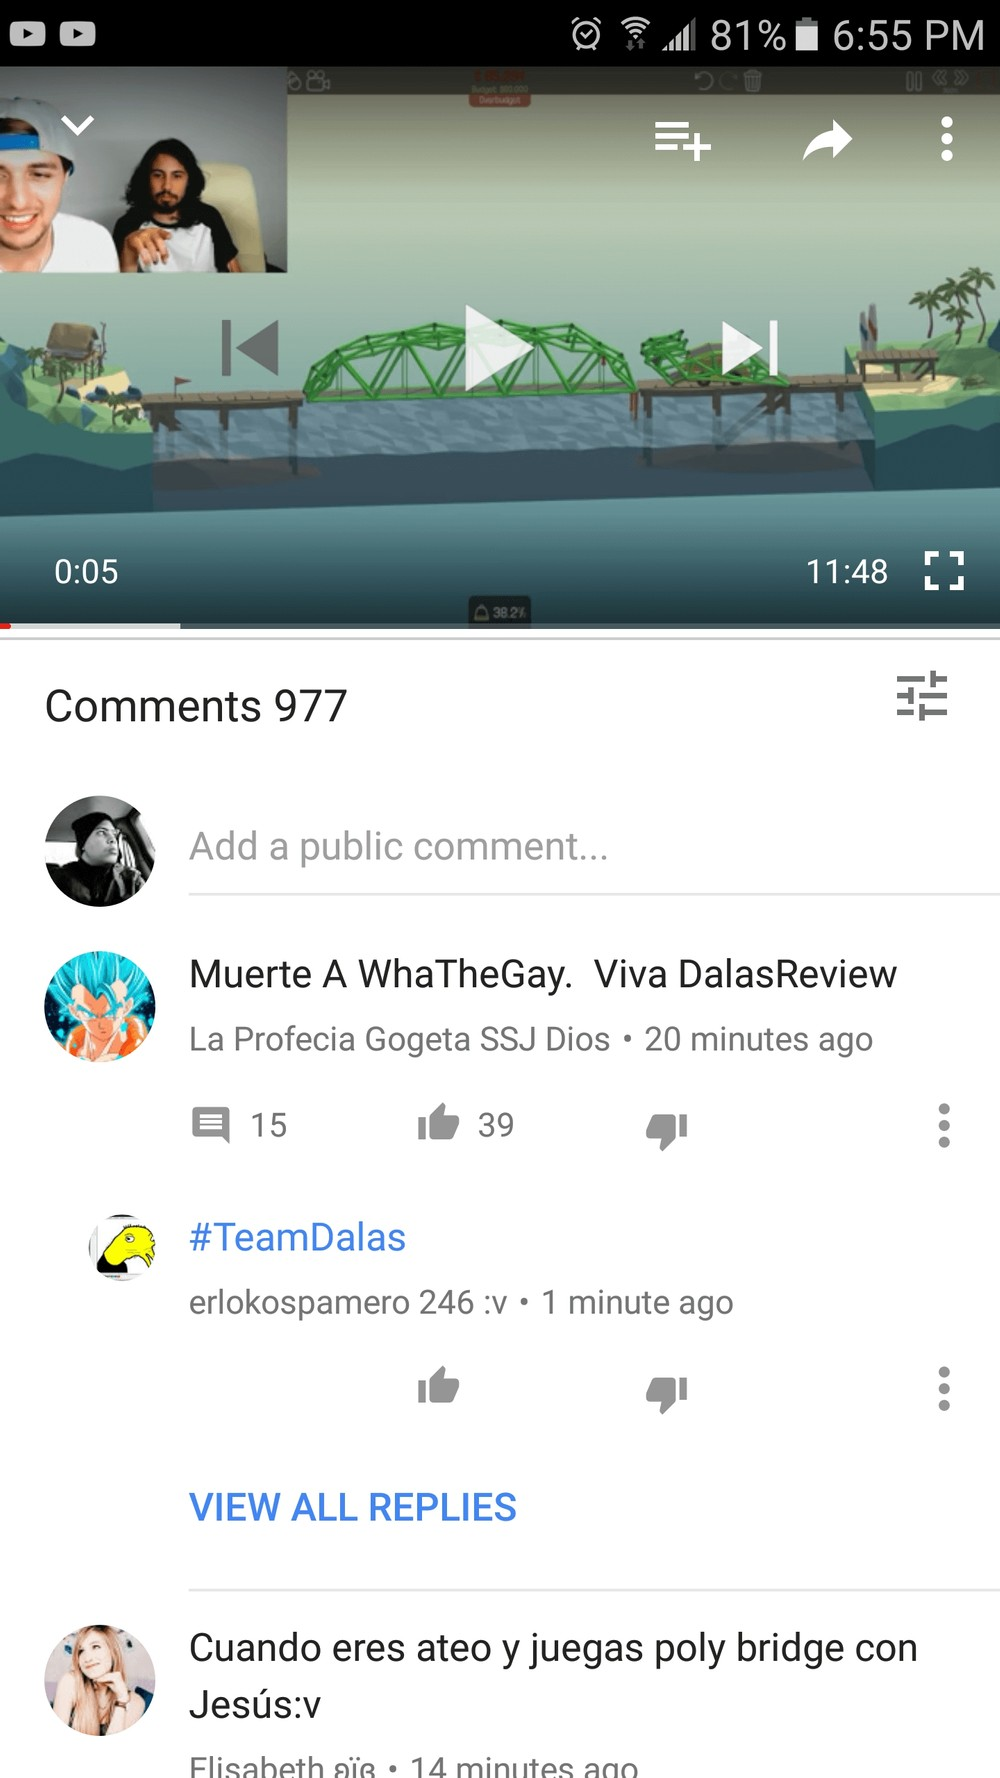 YouTube Android App comments UI could get an update soon